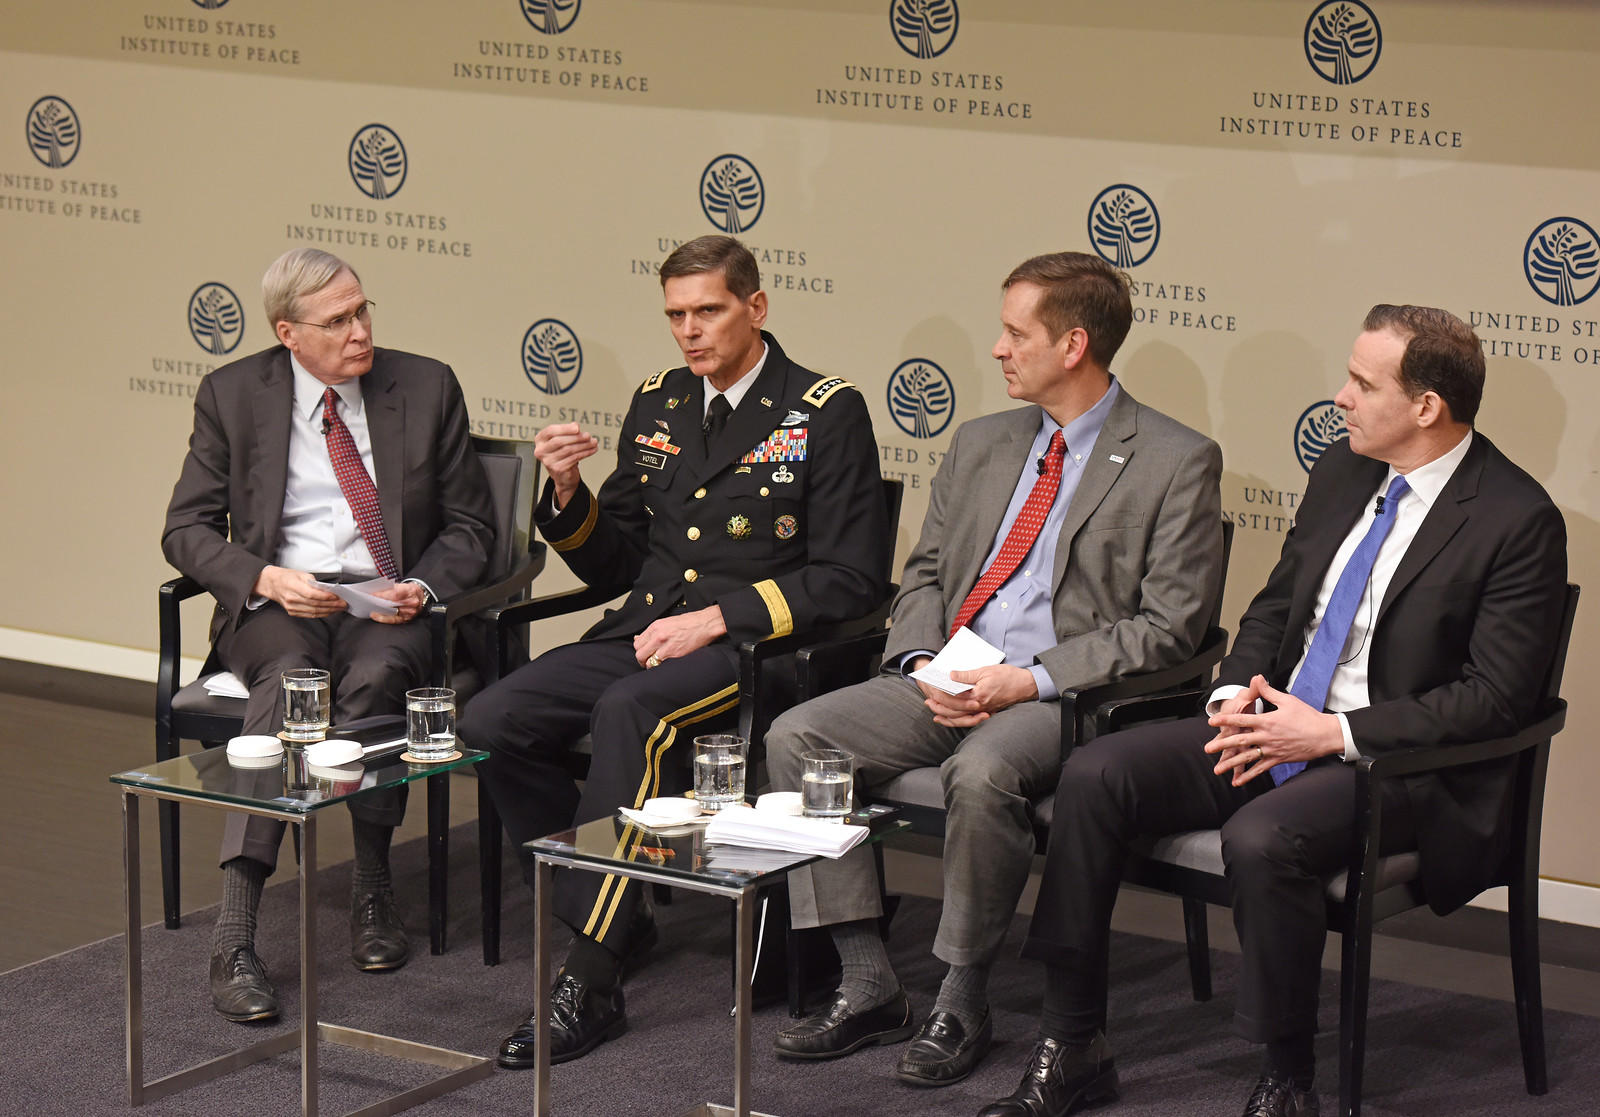 USIP board chair and former U.S. National Security Advisor Stephen Hadley, left, questions top U.S. officials from U.S. Central Command, USAID, and the State Department, about strategy for stabilizing Iraq and Syria.